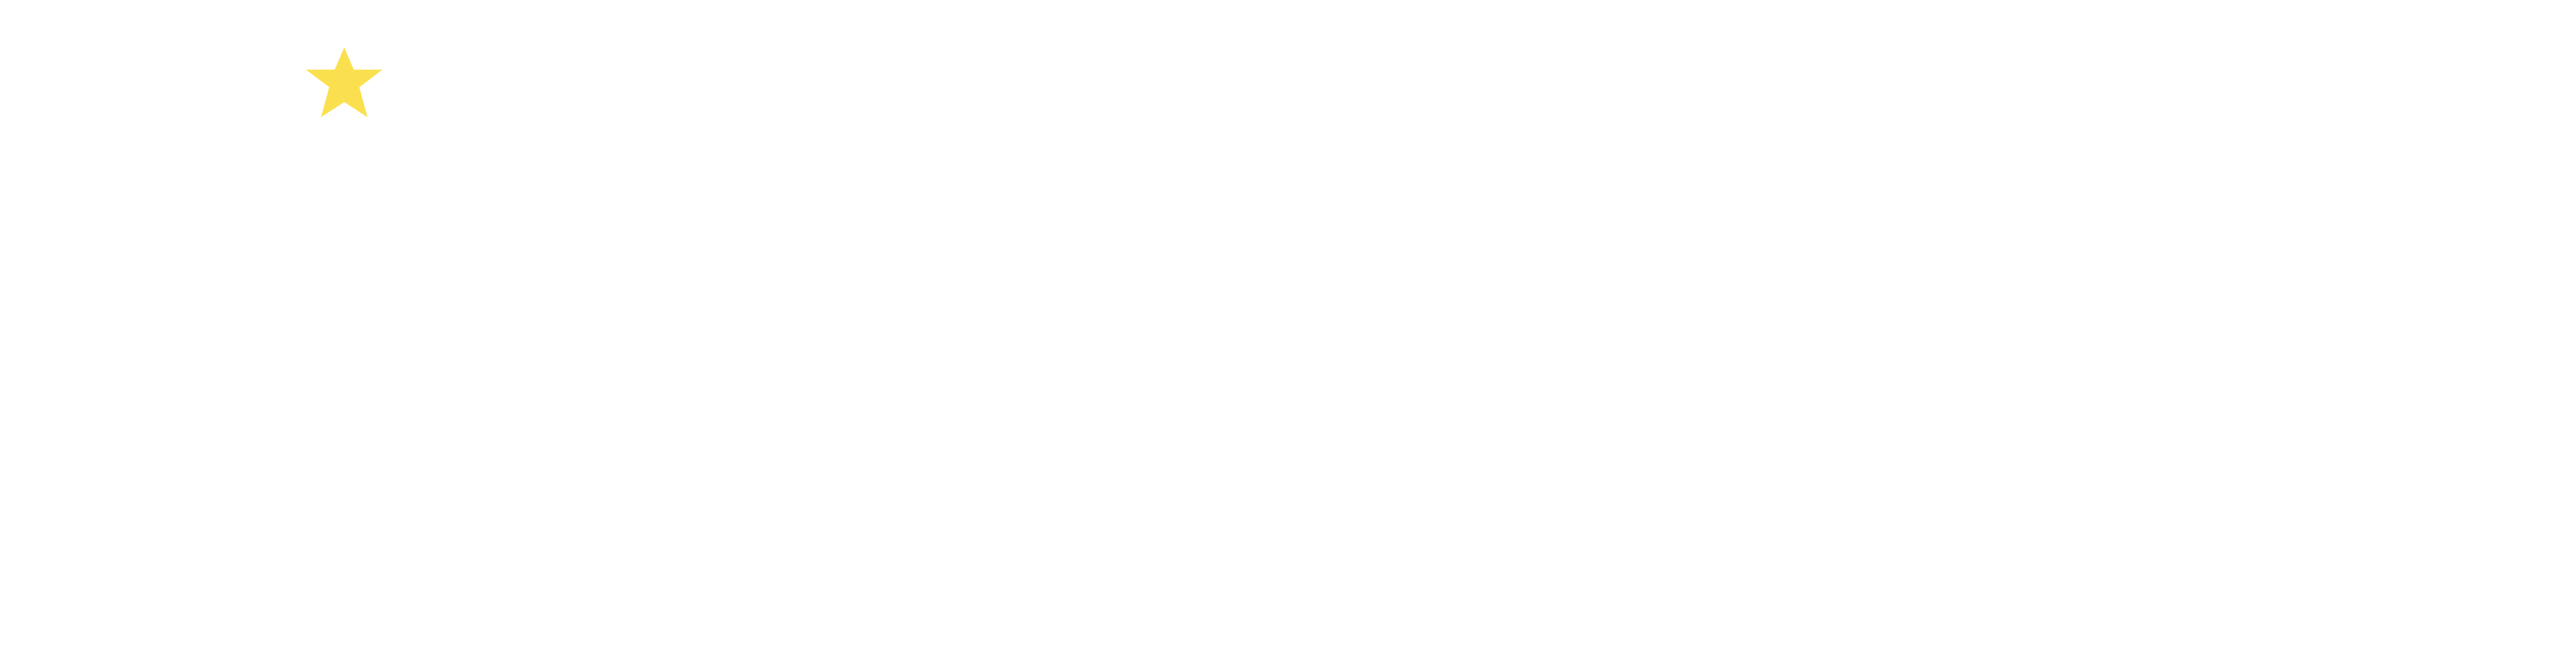 Dilly Bistro